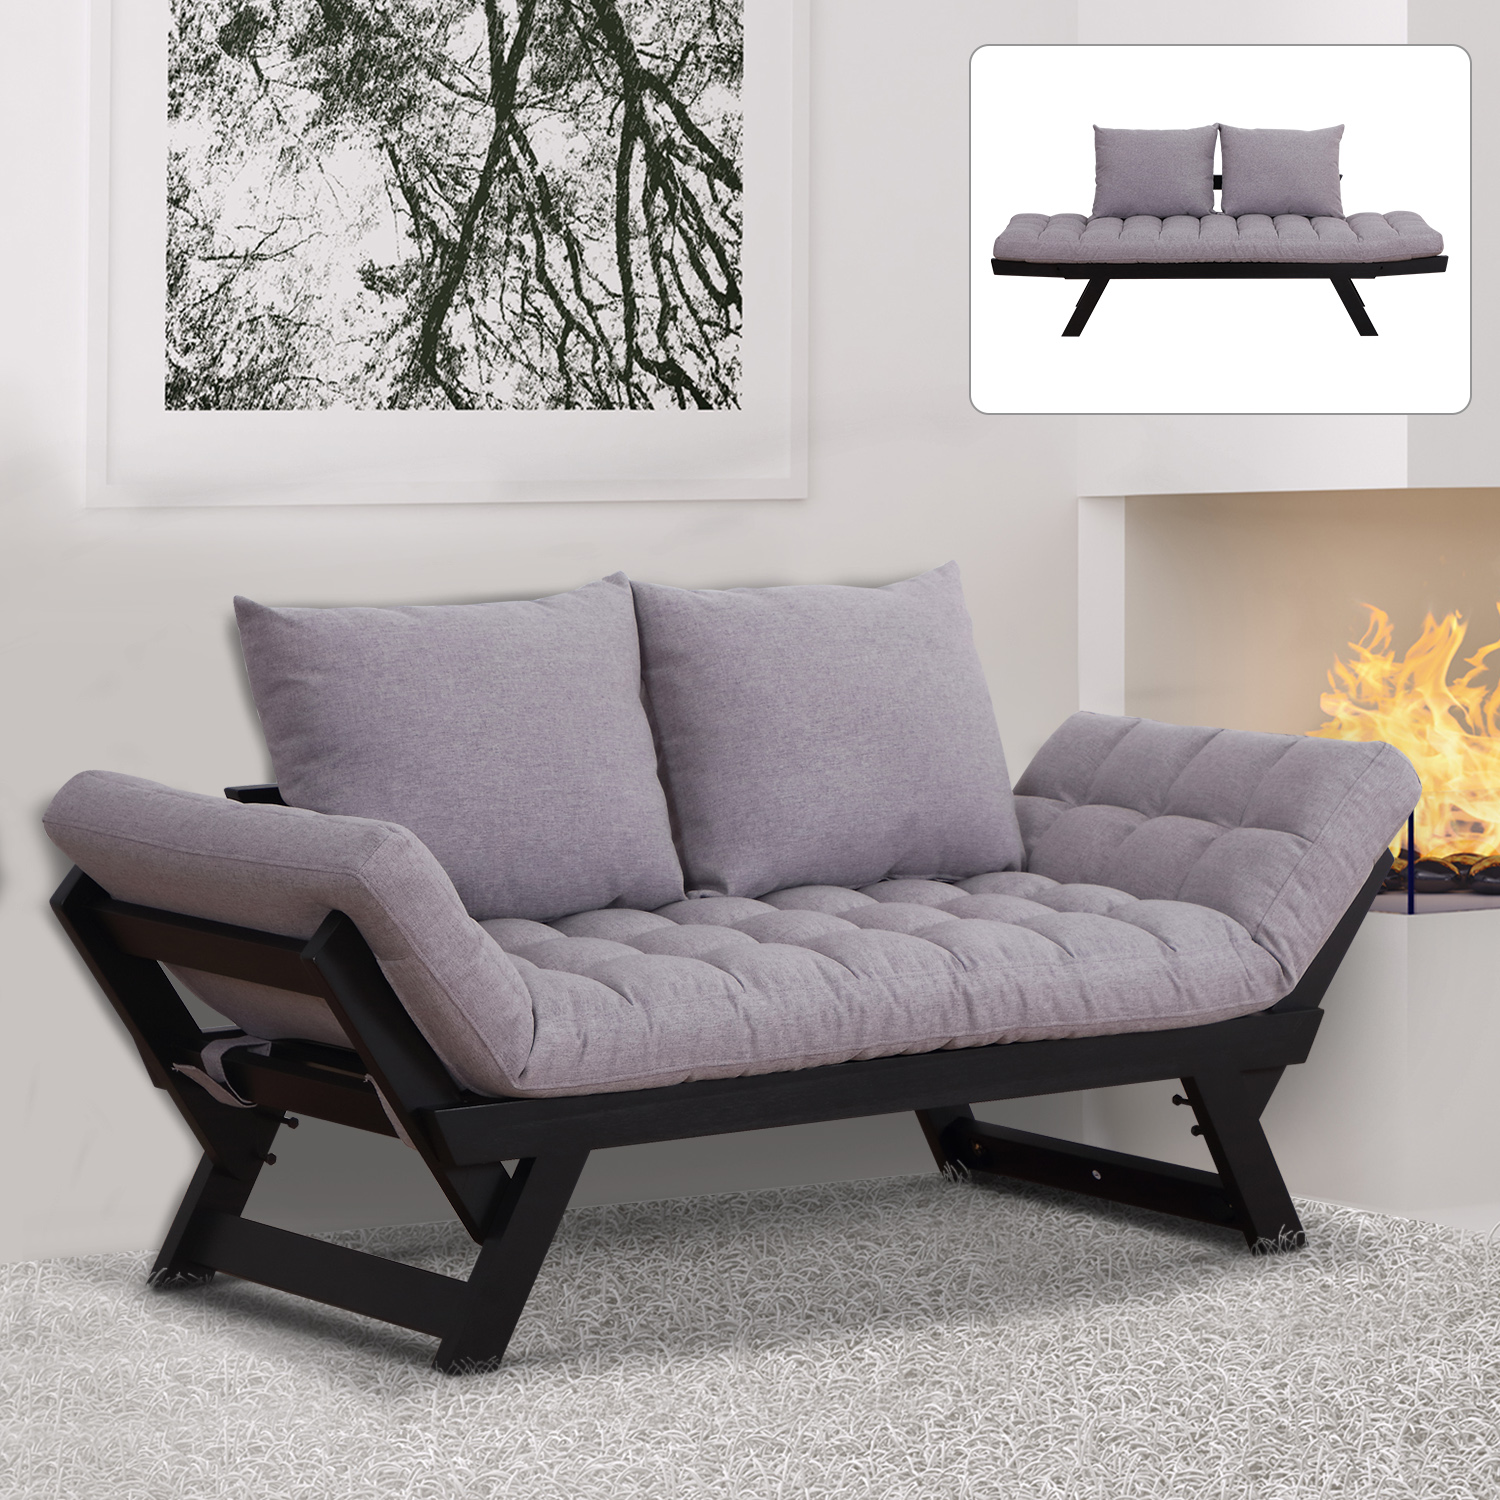 Details about 2-in-1 Sofa Bed Convertible Loveseat Living Room Grey